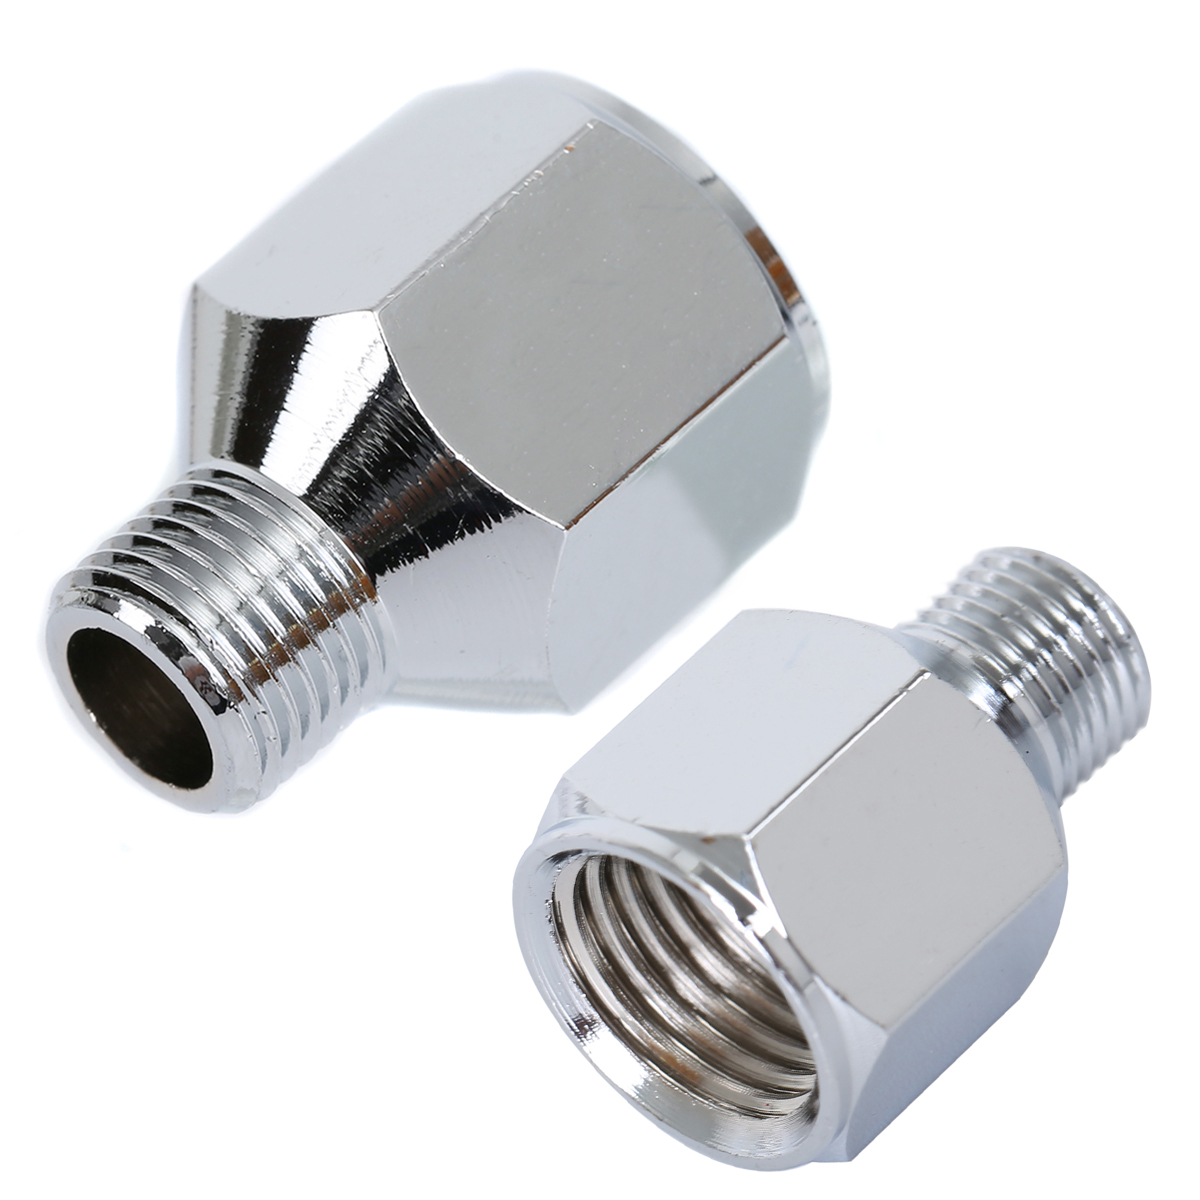 Airbrush Air Hose Adaptor Connector 1/4 BSP Female To 1/8 BSP Male Spray Pen Transfer Connecter Quick Coupler Pipe Fittings